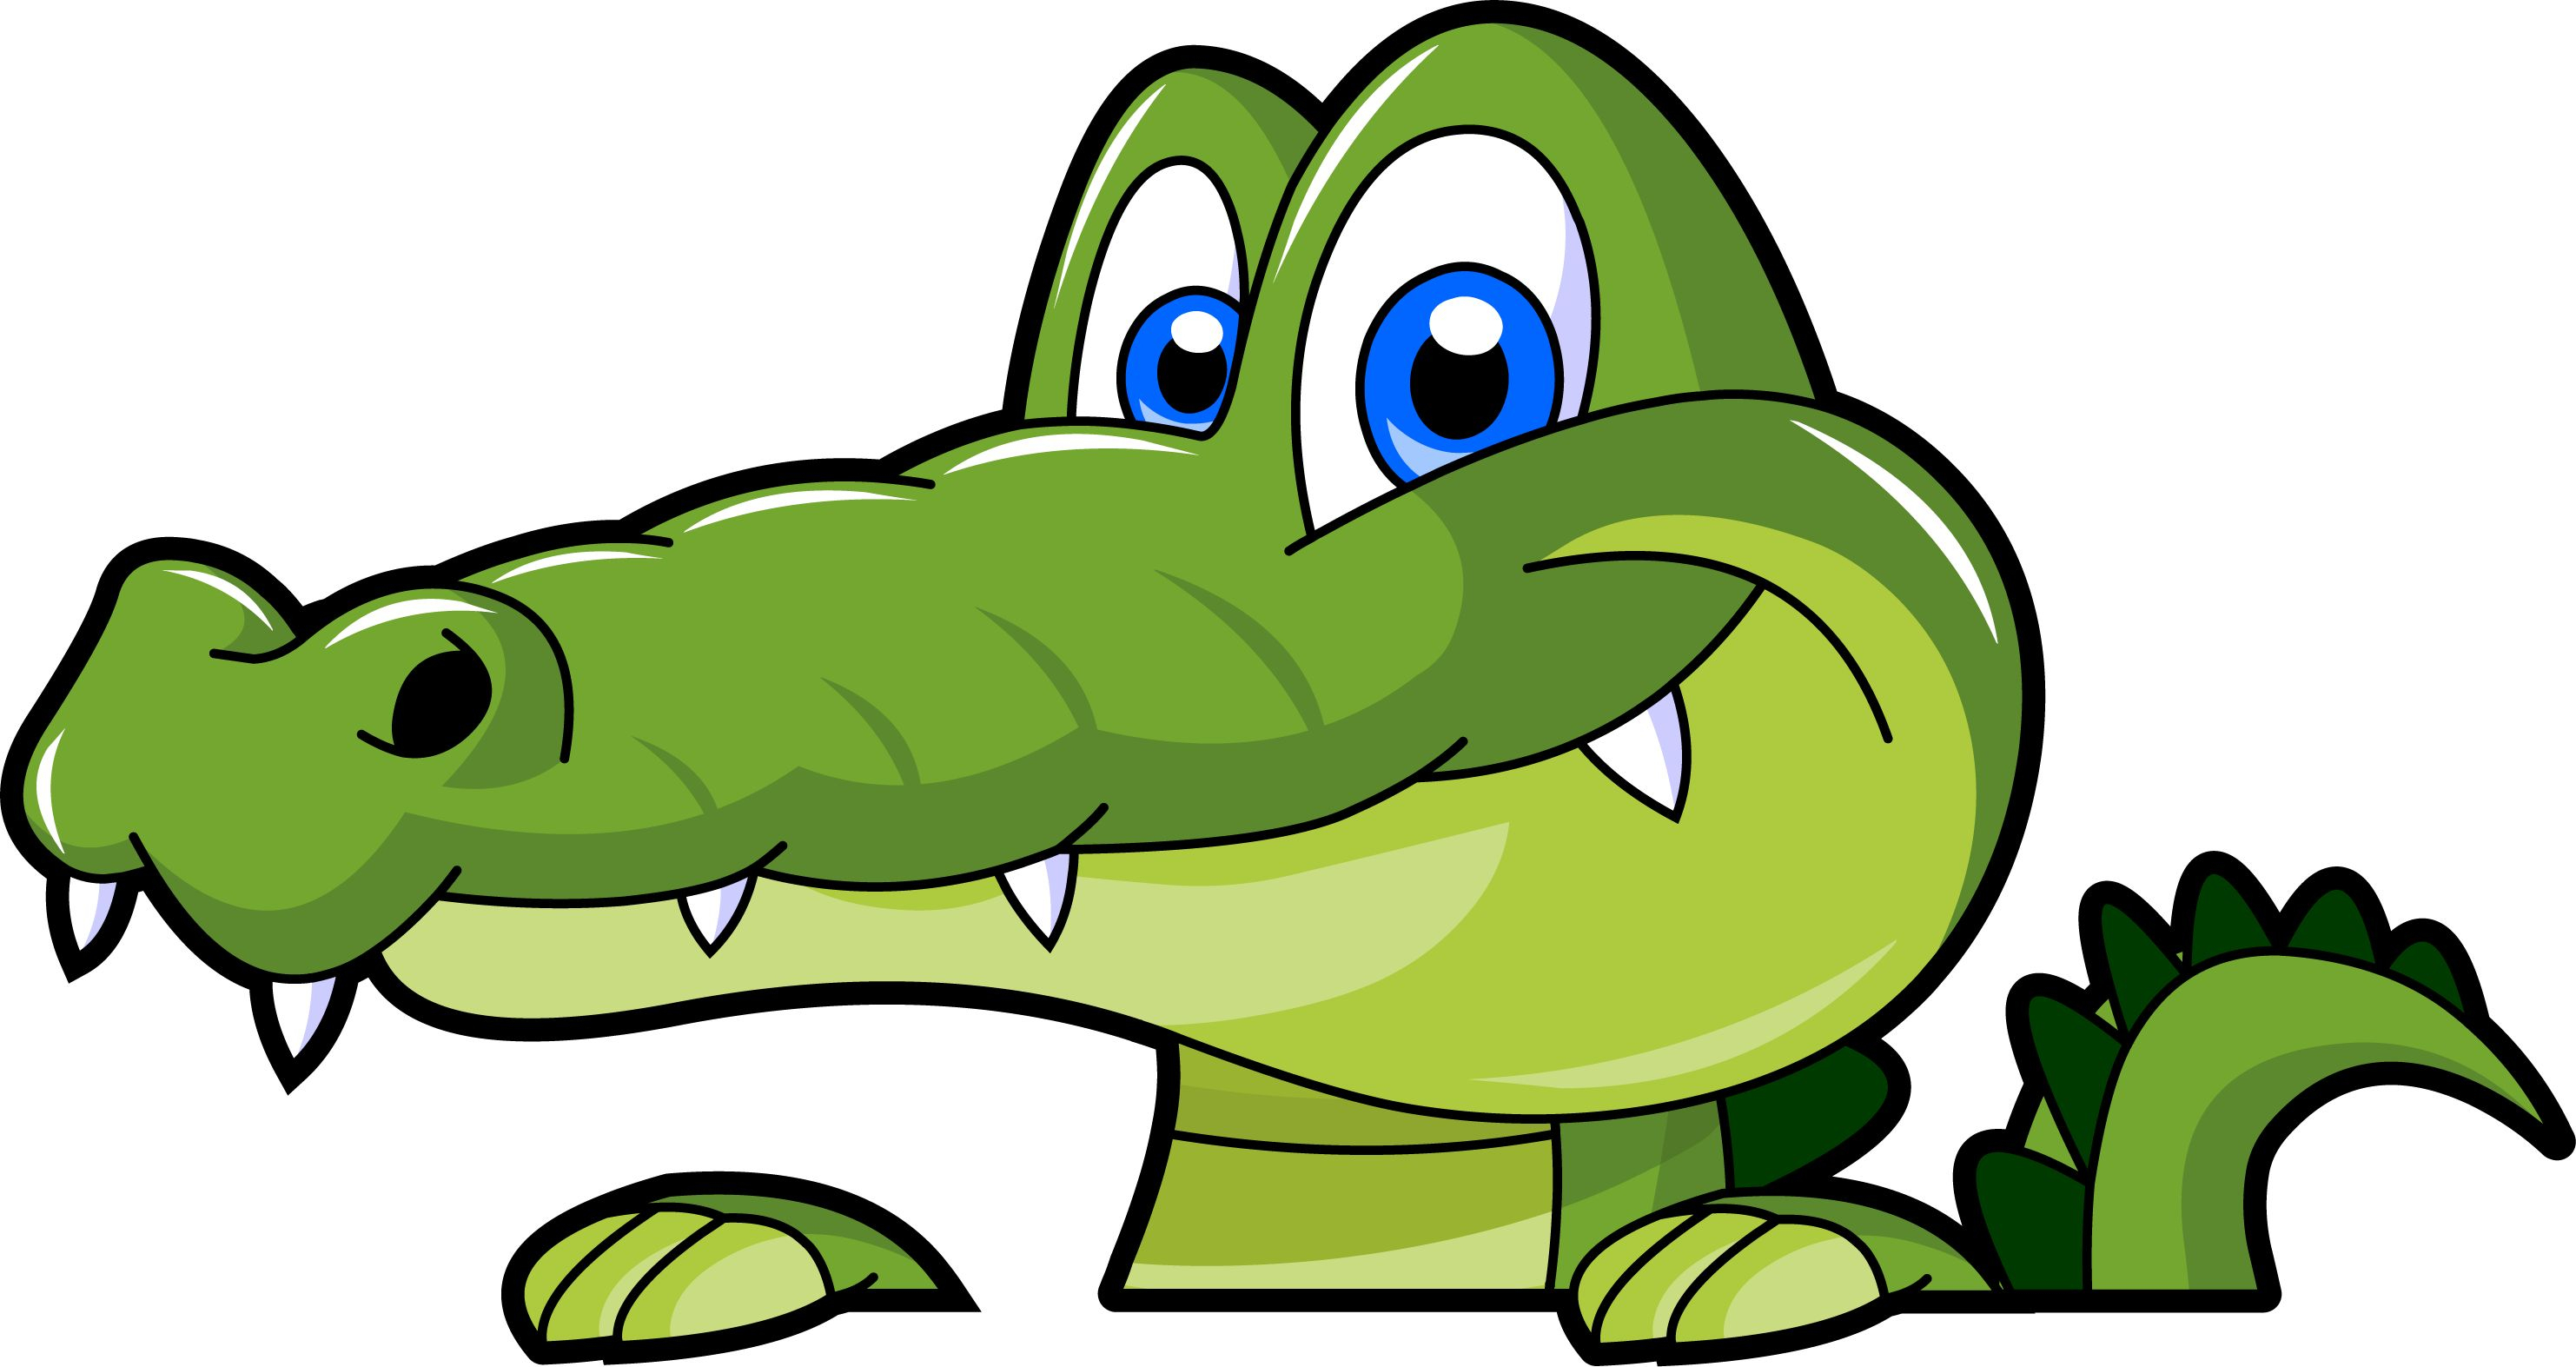 alligator cartoon drawing at getdrawings com free for personal use